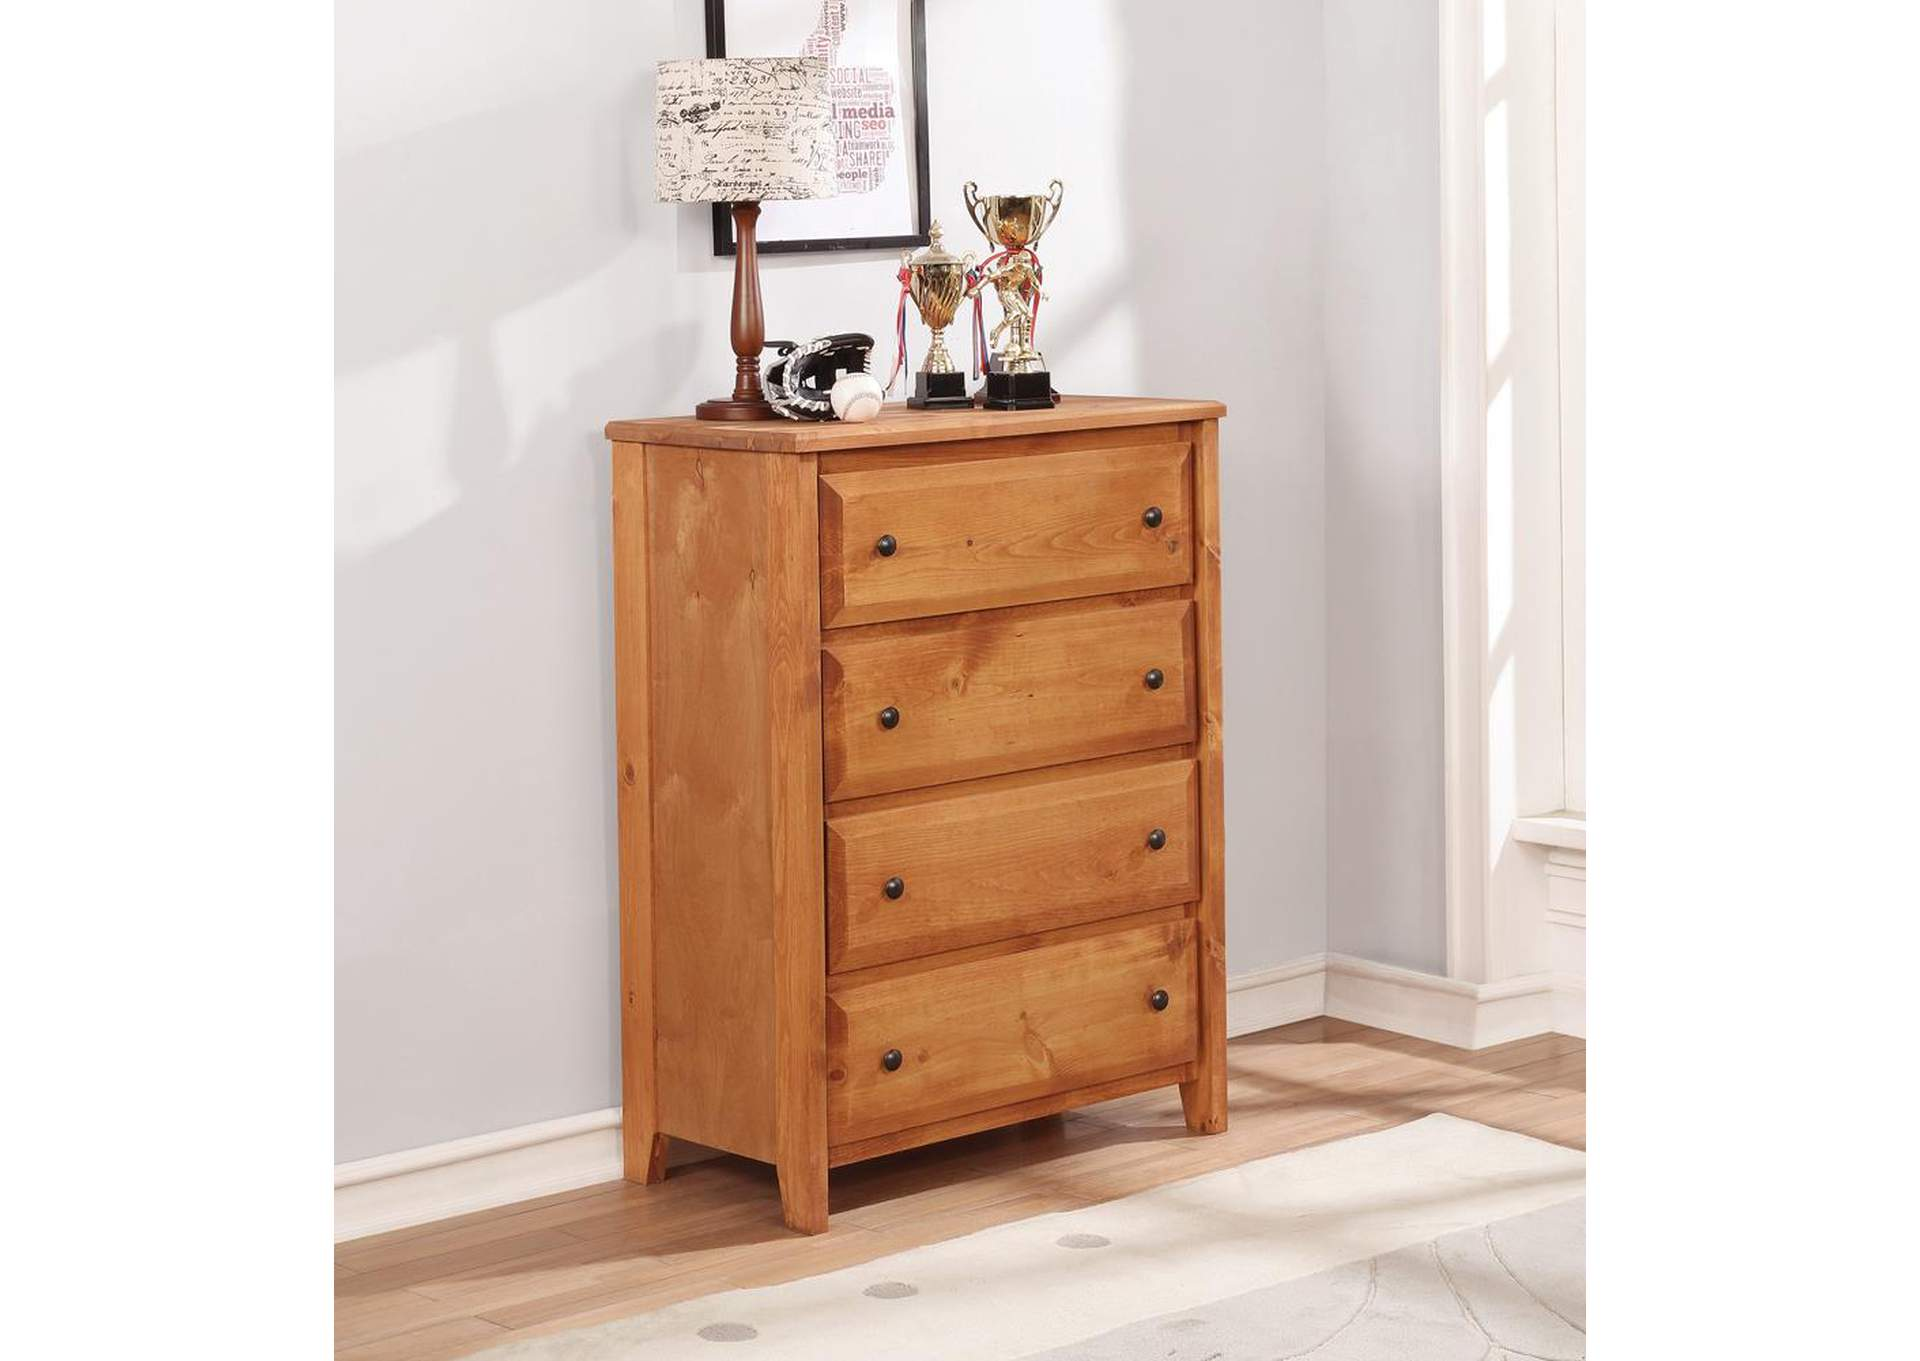 4 Drawer Chest,Coaster Furniture